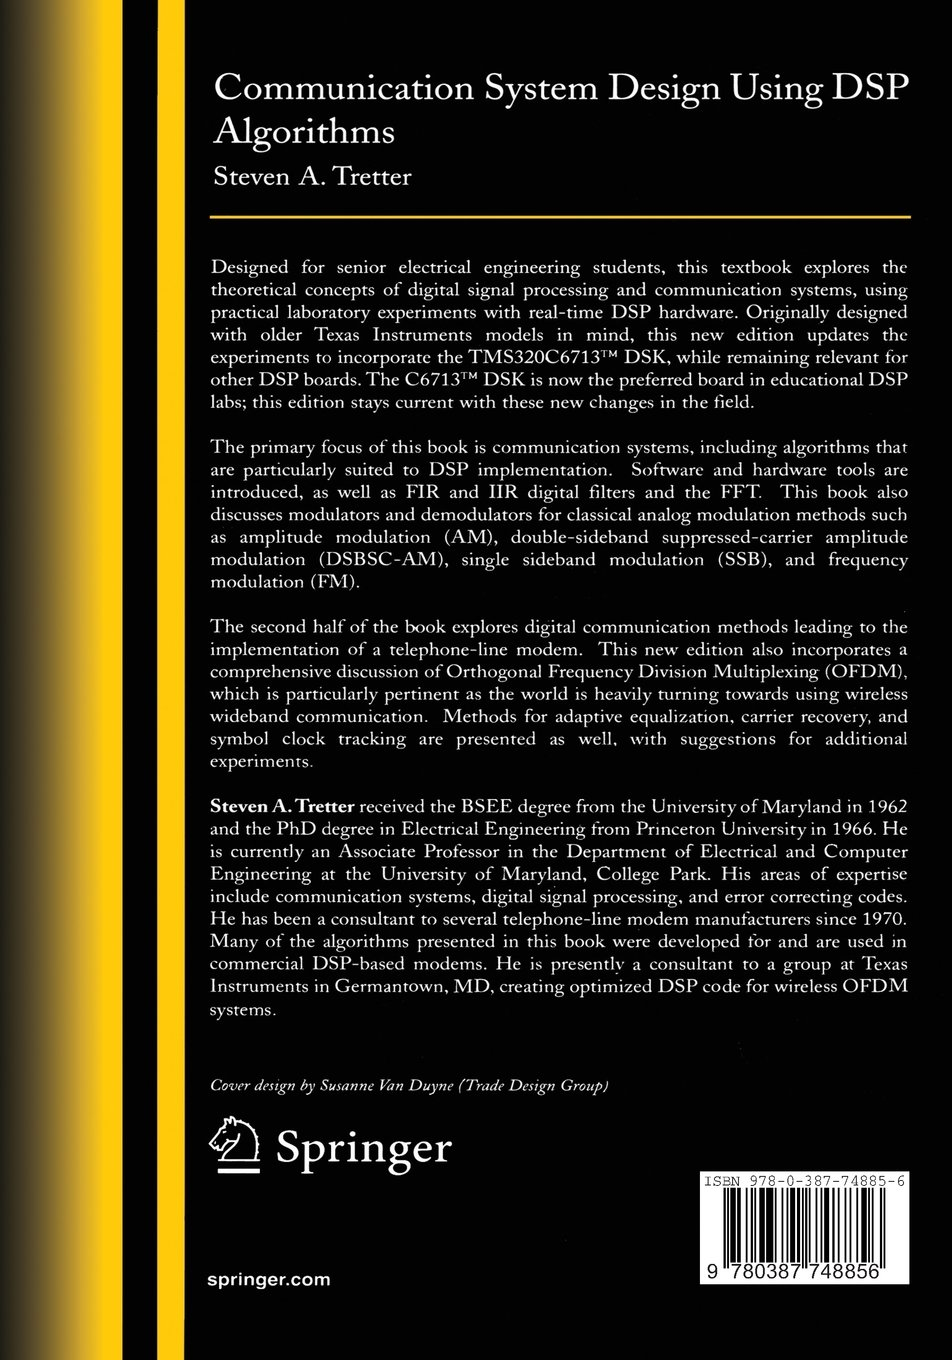 Communication System Design Using Dsp Algorithms With Laboratory Double Sideband Suppressed Carrier Dsb Sc Modulator Experiments For The Tms320c6713tm Dsk Steven A Tretter Libros